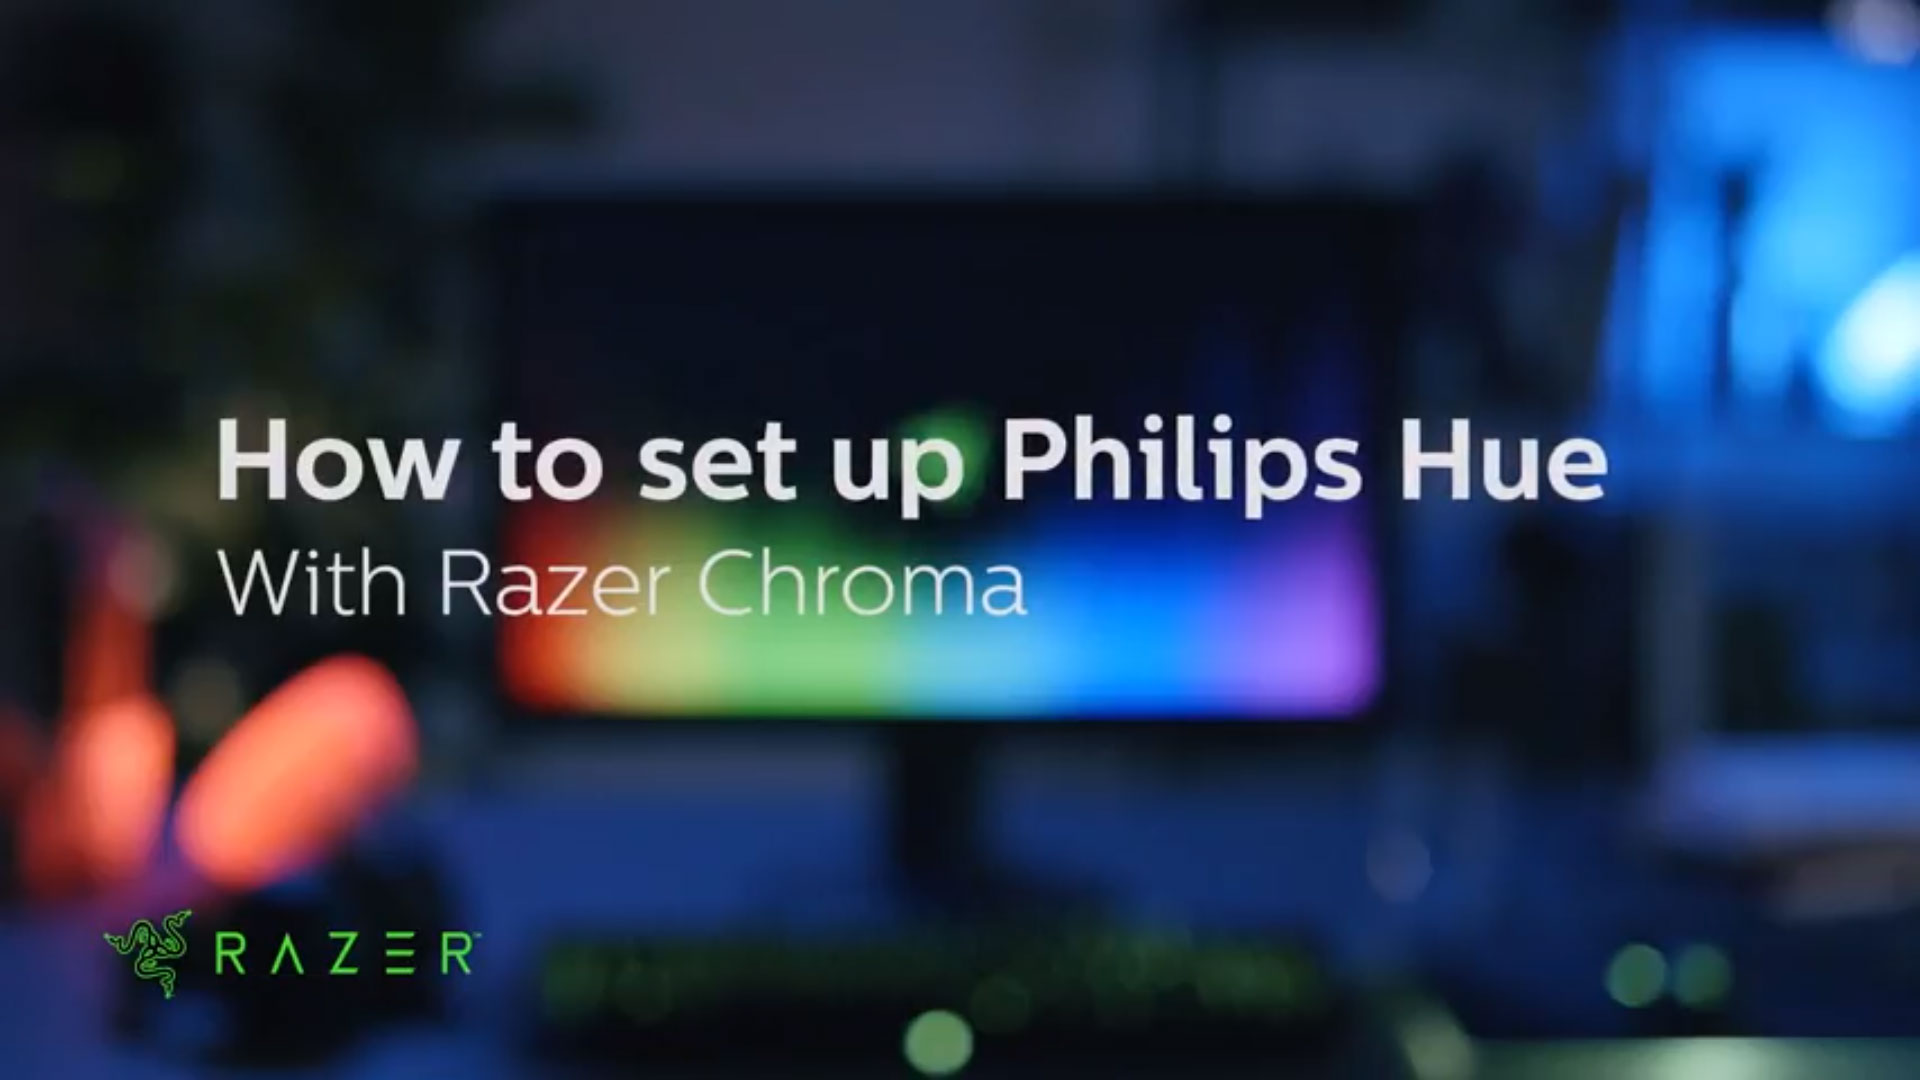 How to set up Philips Hue with Razer Chroma